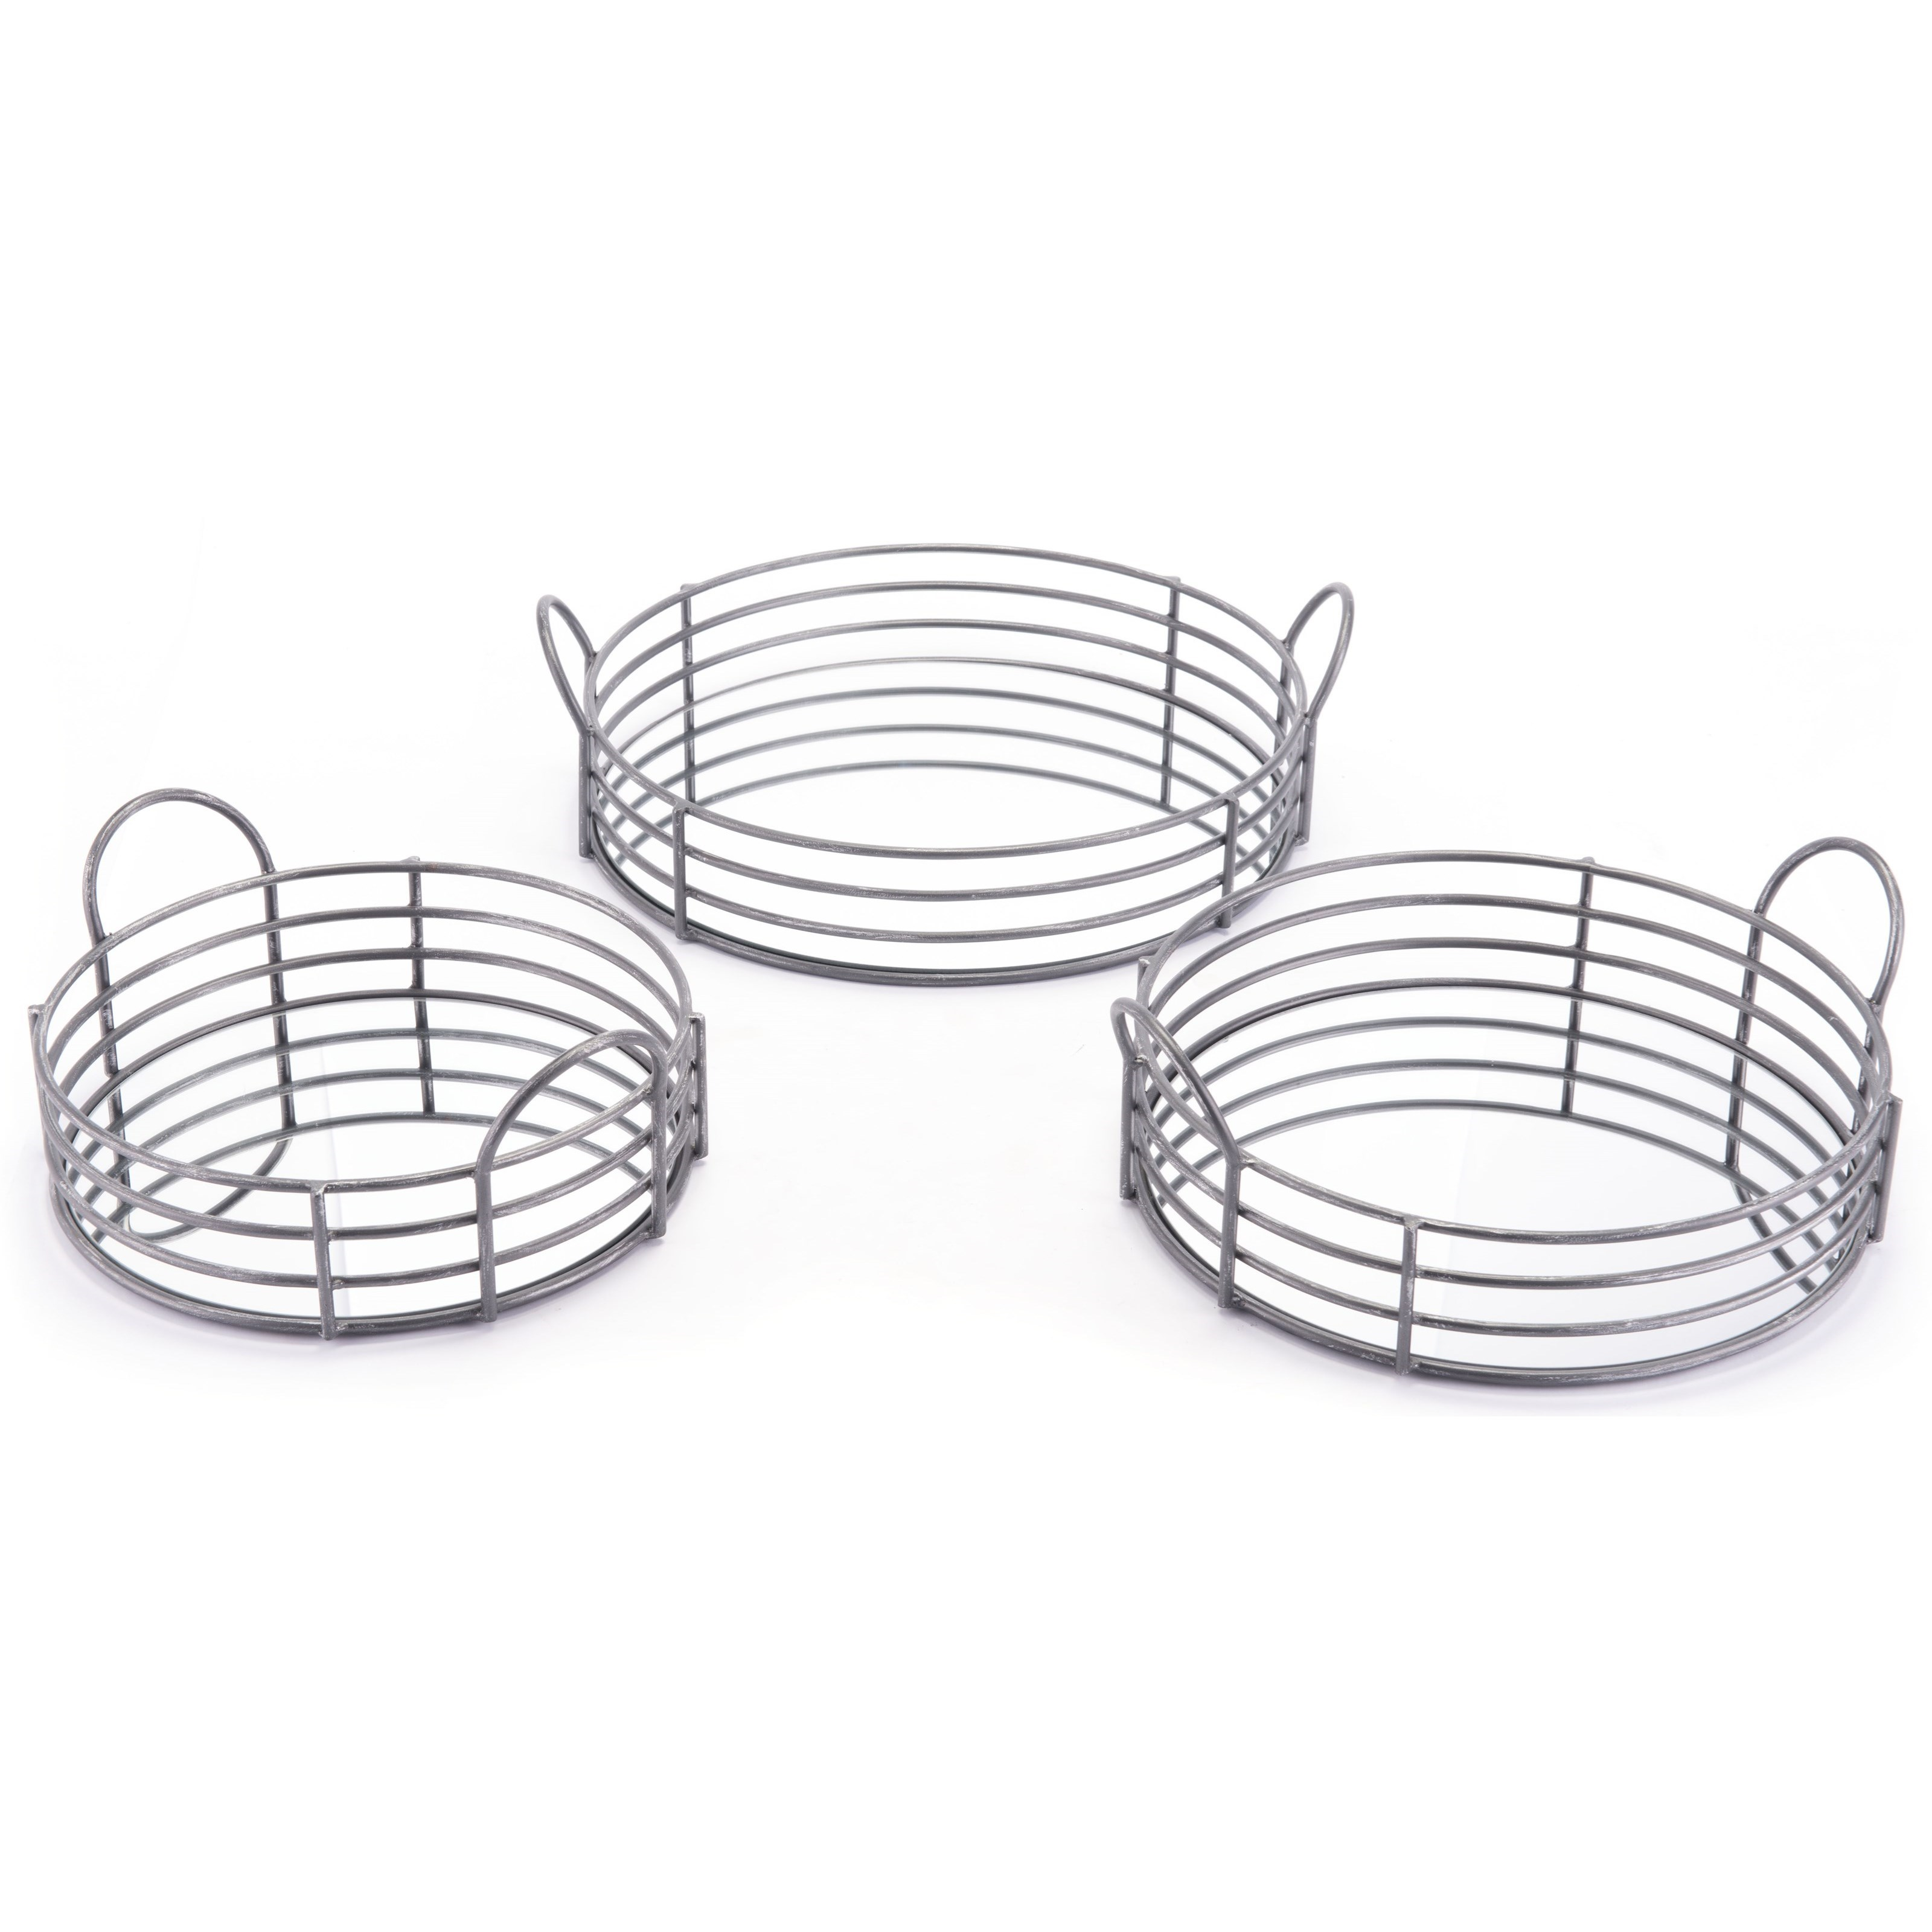 Zuo Boxes, Bowls and Trays Set of 3 Round Trays - Item Number: A10891